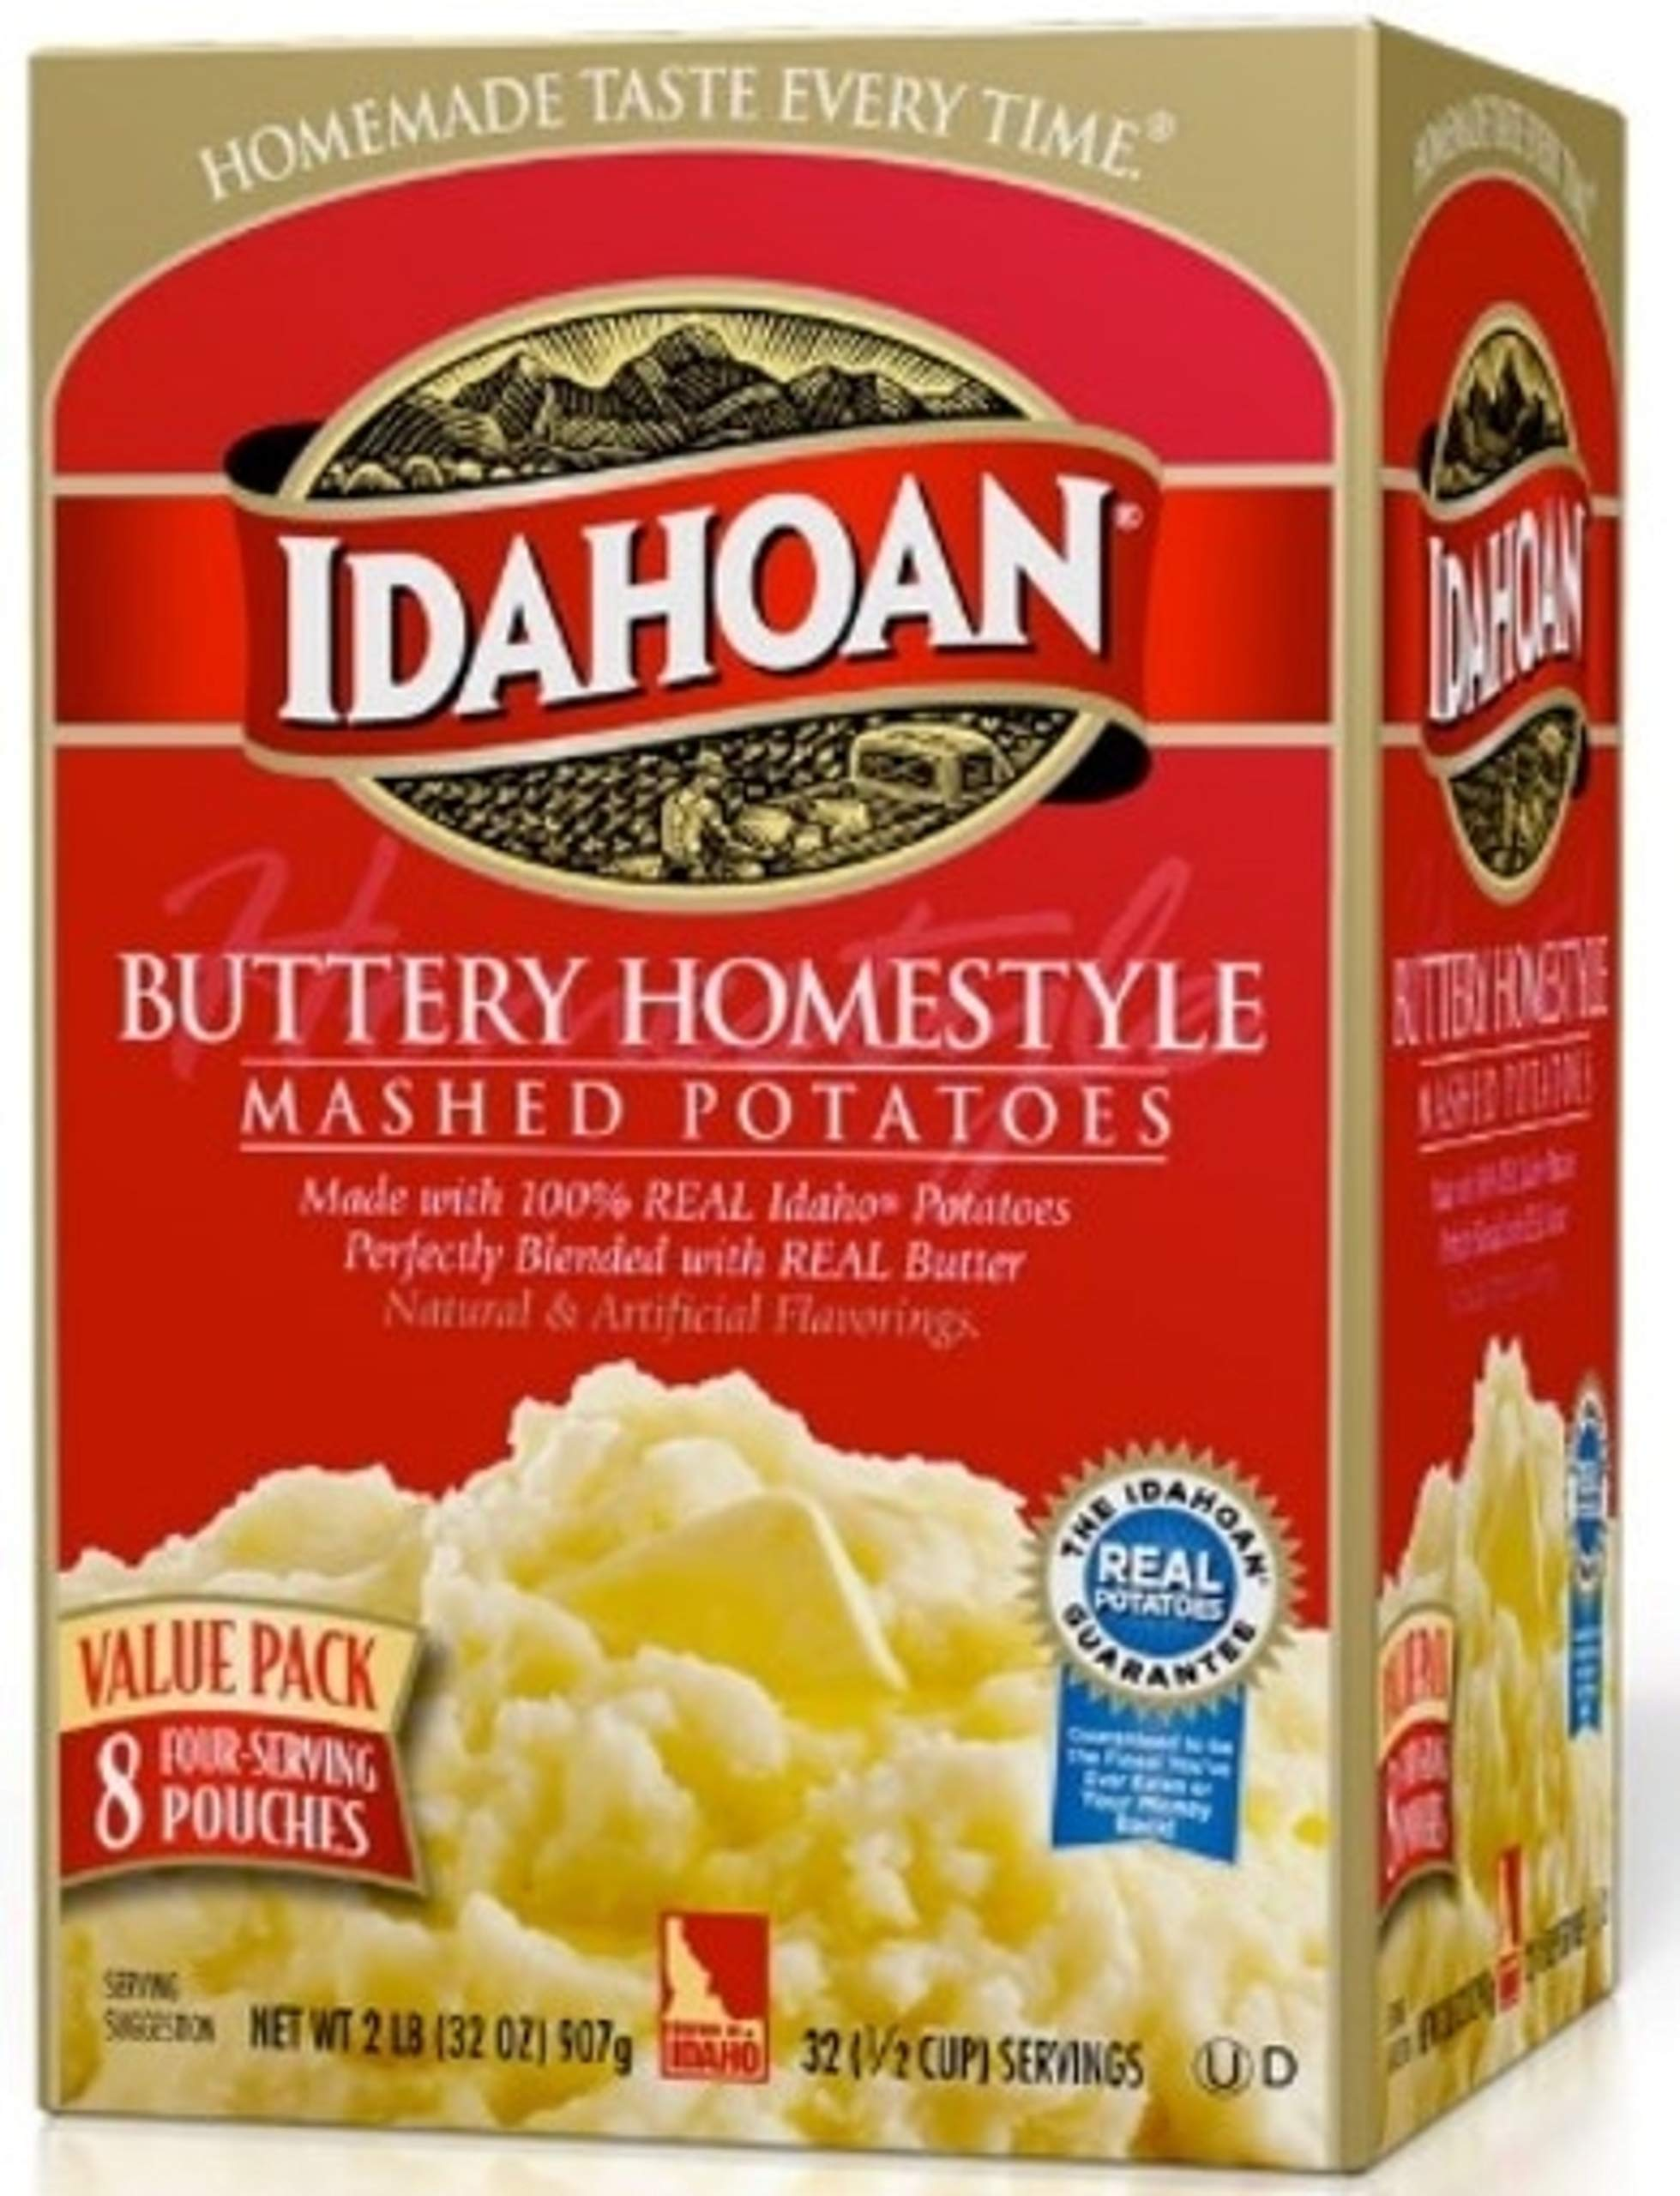 Idahoan Buttery Homestyle Mashed Potatoes, Made with Naturally Gluten-Free 100% Real Idaho Potatoes, 8 Count (4 Servings Each)